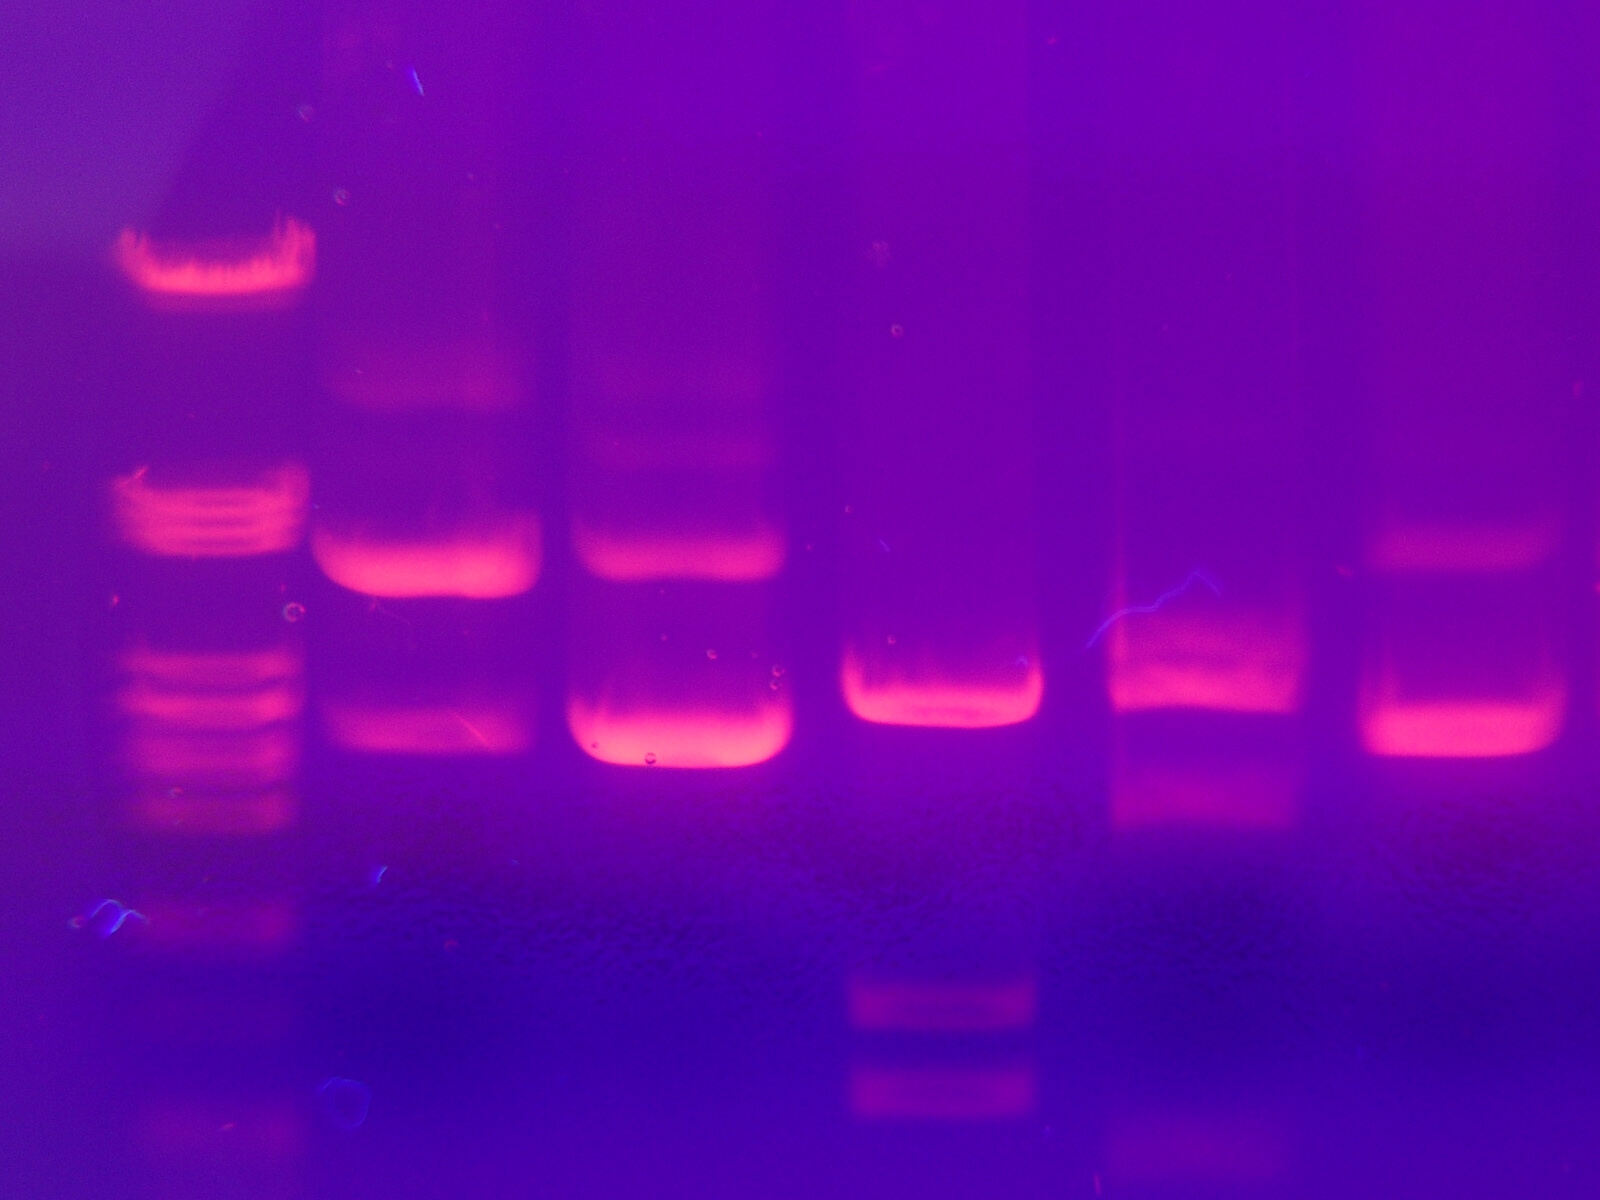 band of DNA visible in a gel electrophoresis experiment